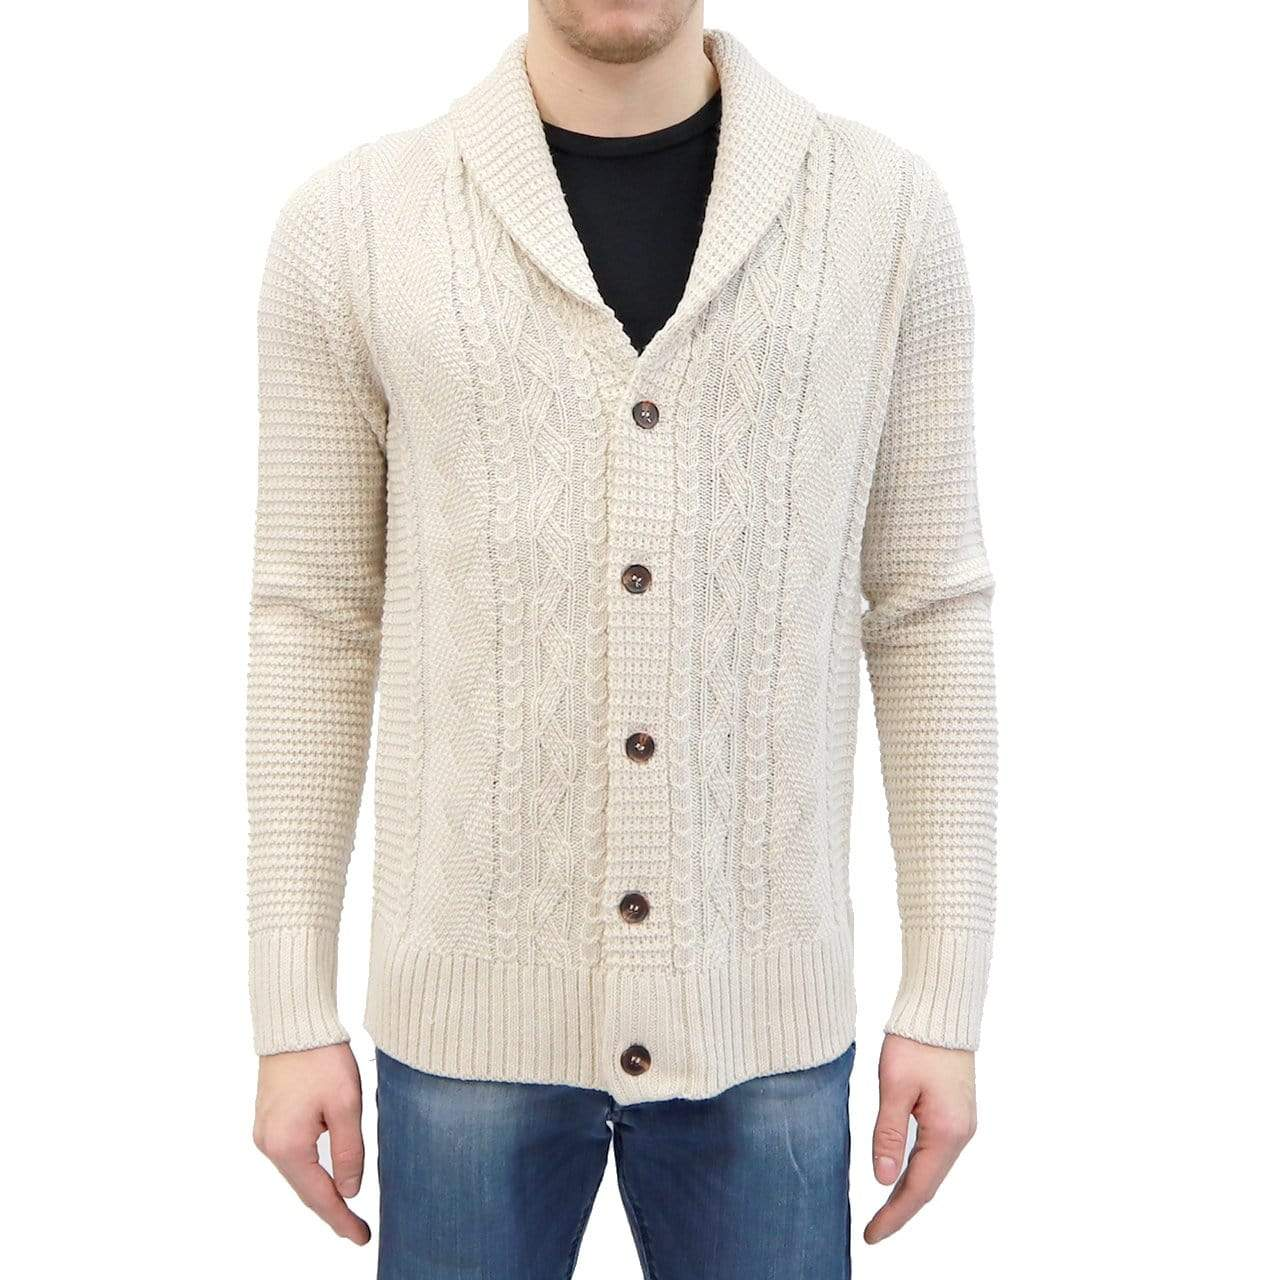 RD International Style IVORY / S Cable Knit Cardigan Sweater + more colours